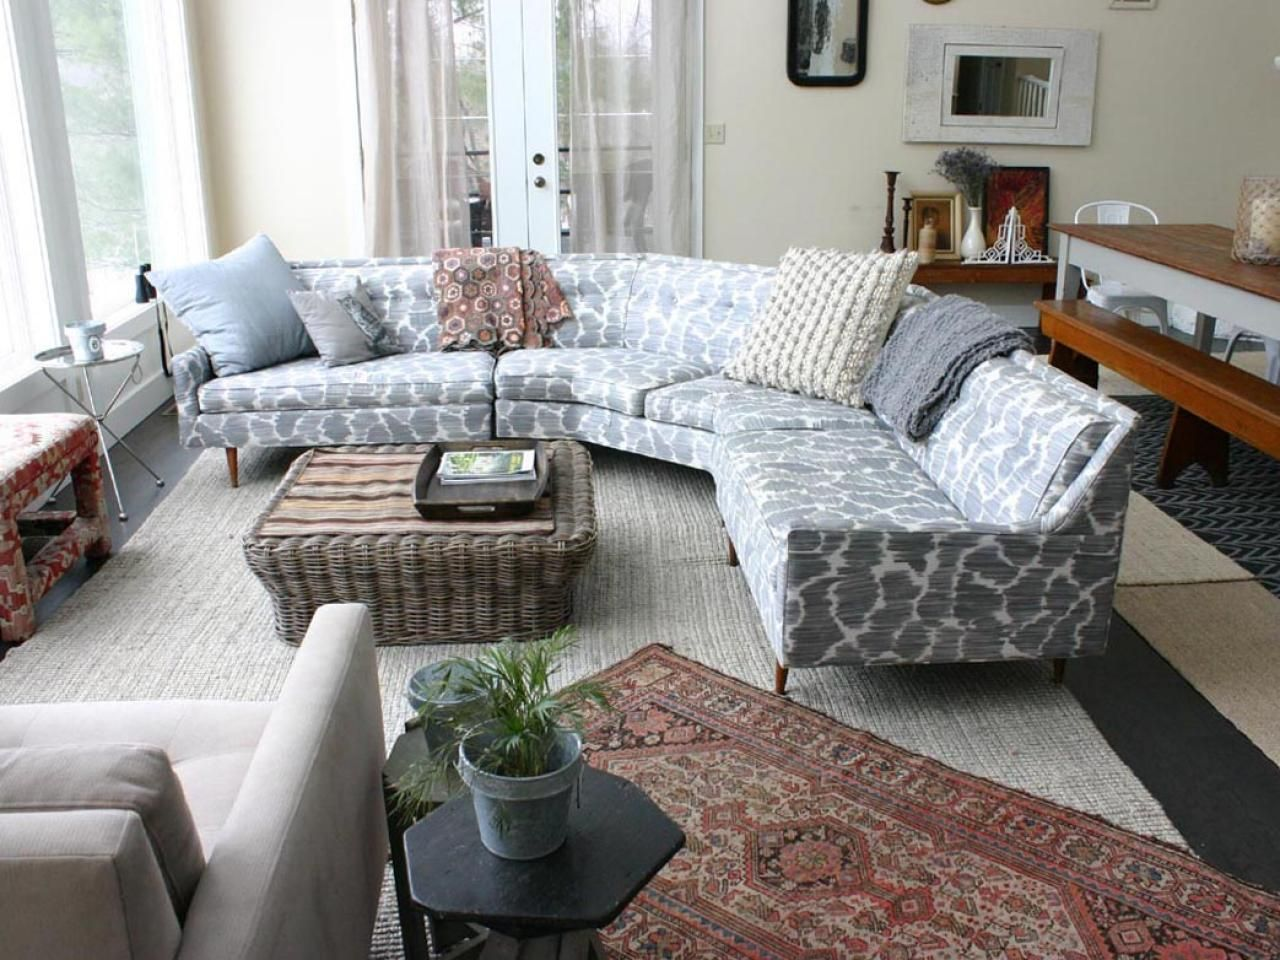 Patterned Pale Blue Circular Sectional Sofa Bed with A Rattan. Queen Anne Living Room Furniture Set. Luxurious Traditional Style Formal Living Room Furniture Set Hd. Embroidery and Use Of Textiles Carpets Usually Rich in Texture